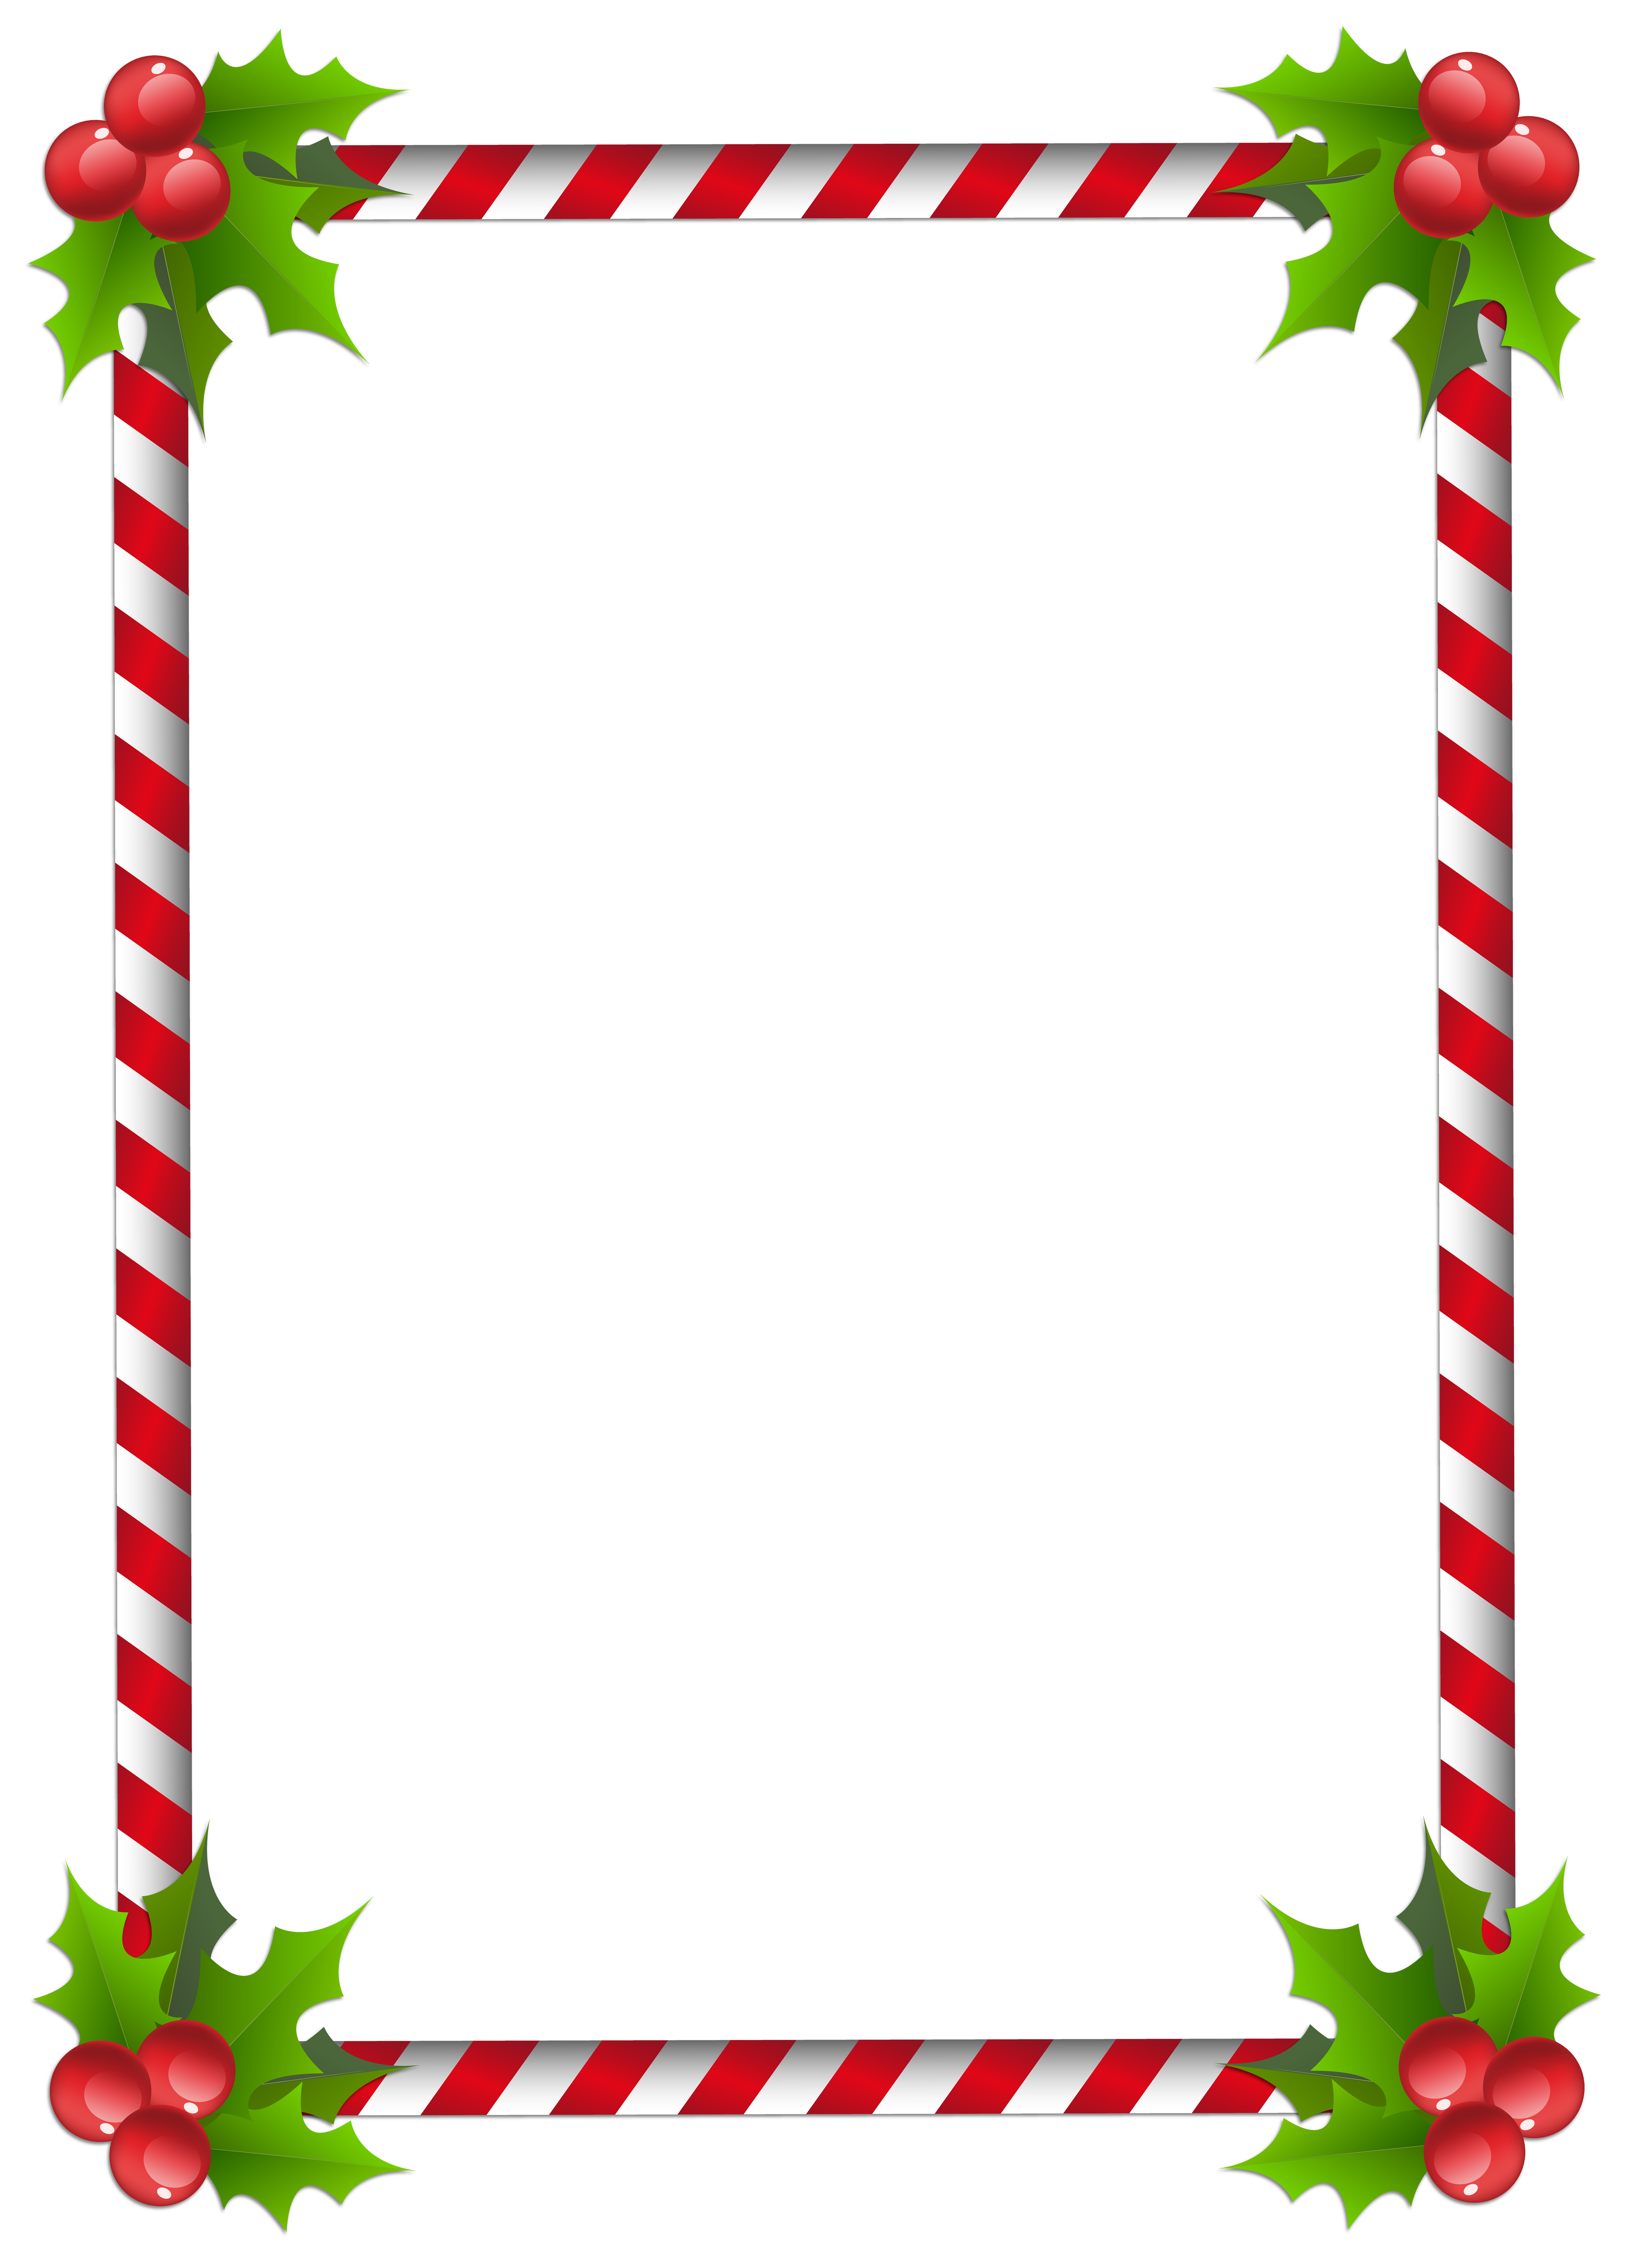 vector transparent Clipart christmas borders and frames. Transparent classic frame border